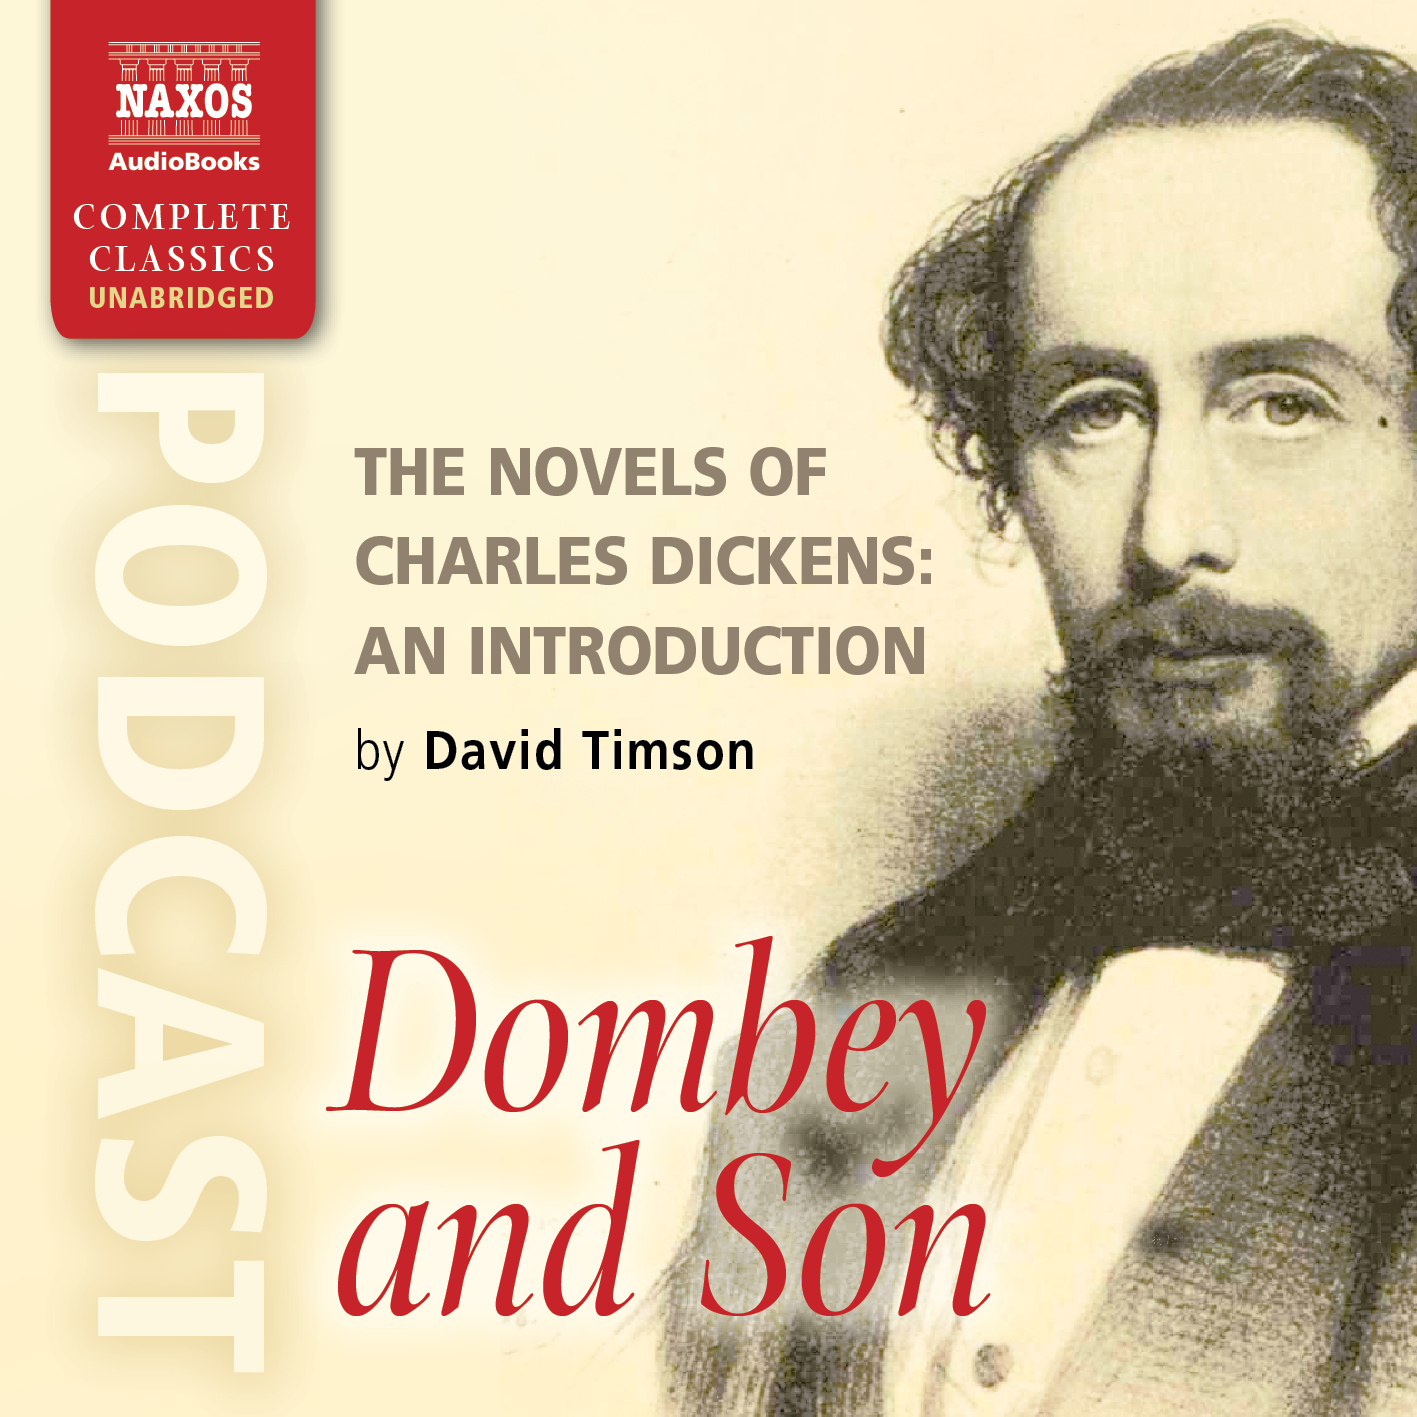 https://naxosaudiobooks.com/wp-content/uploads/2019/08/NA0388_Dombey_and_Son_Podcast.jpg